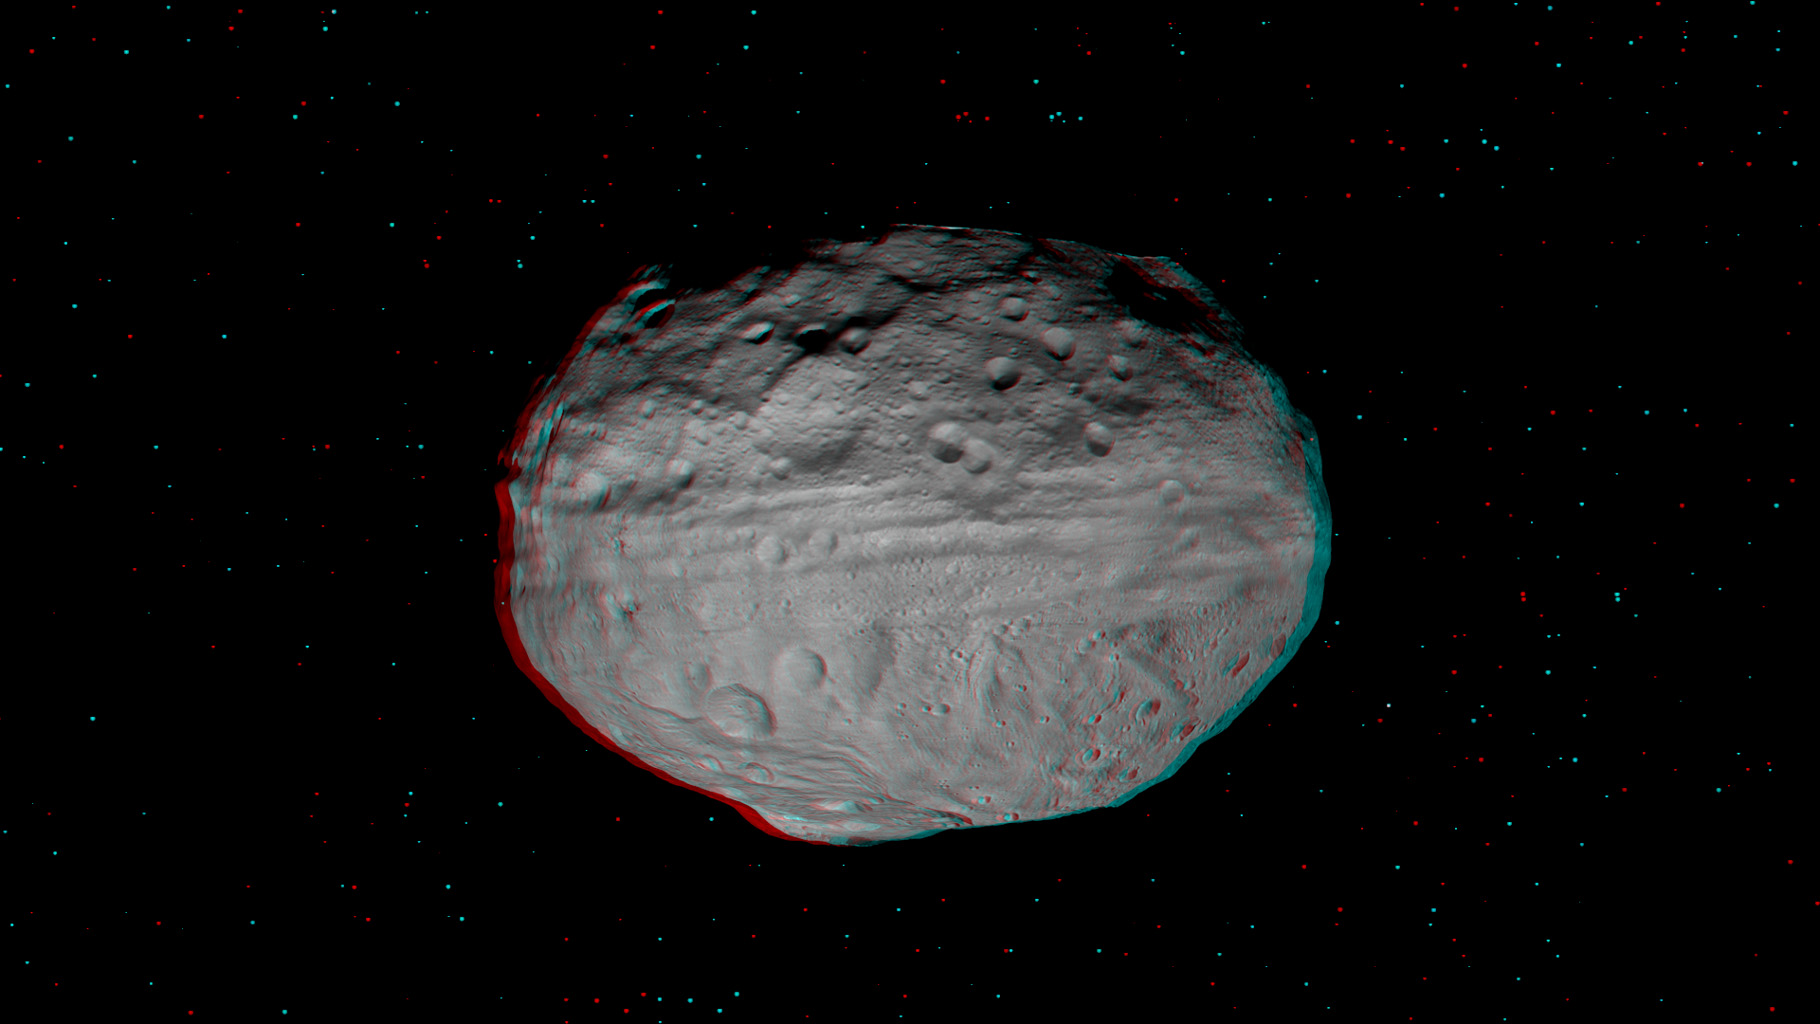 This anaglyph shows the topography of Vesta's eastern hemisphere; equatorial troughs are visible around asteroid Vesta's equator and north of these troughs there are a number of highly degraded, old, large craters. You need 3-D glasses to view this image.